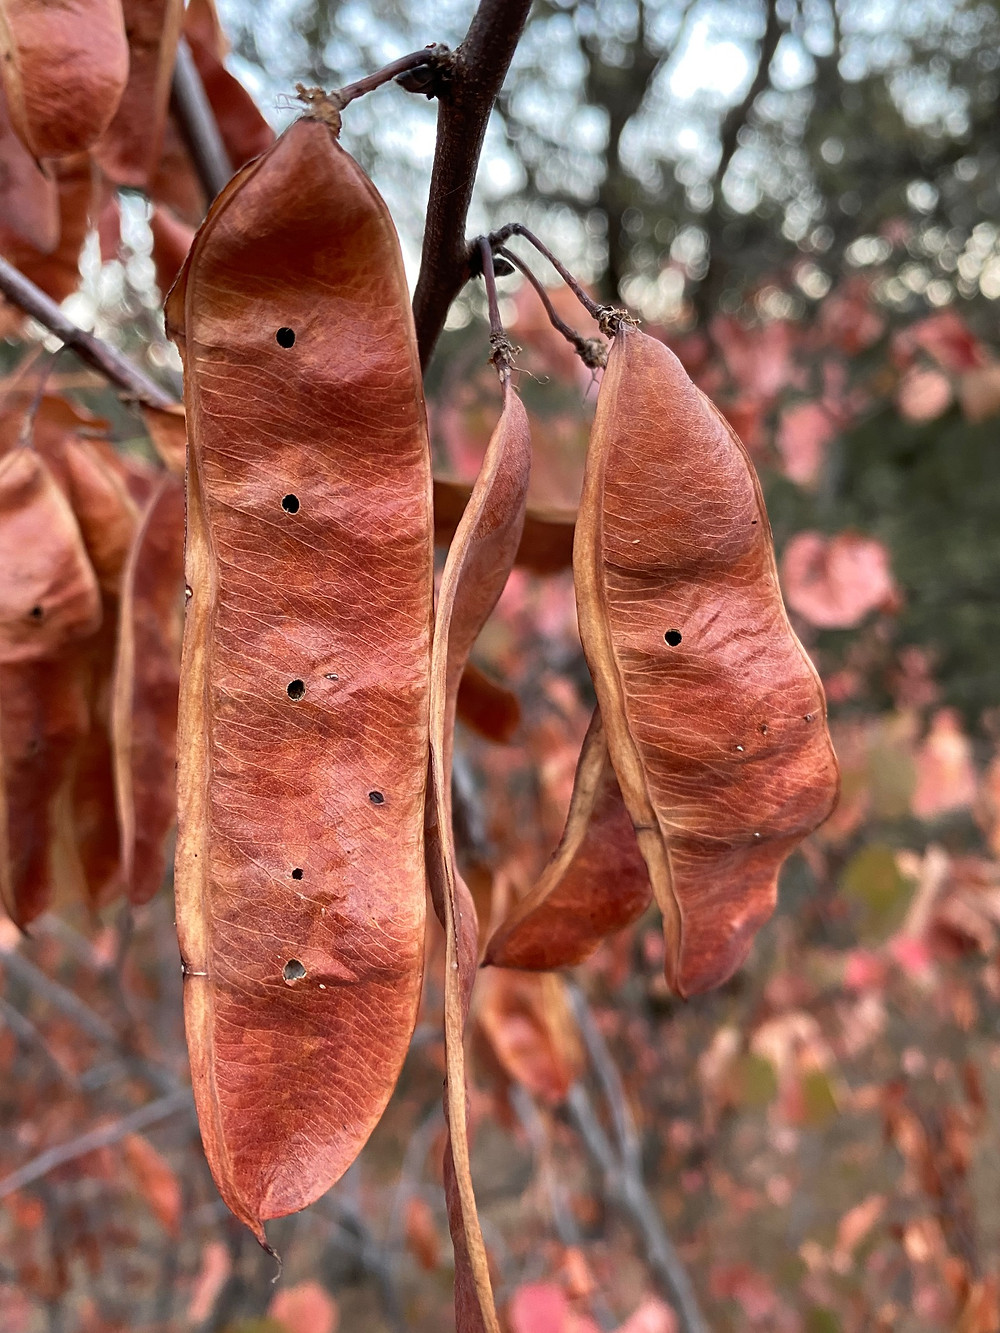 Staghorn sumac in winter dress, photo by Seabrooke Leckie, all rights reserved.